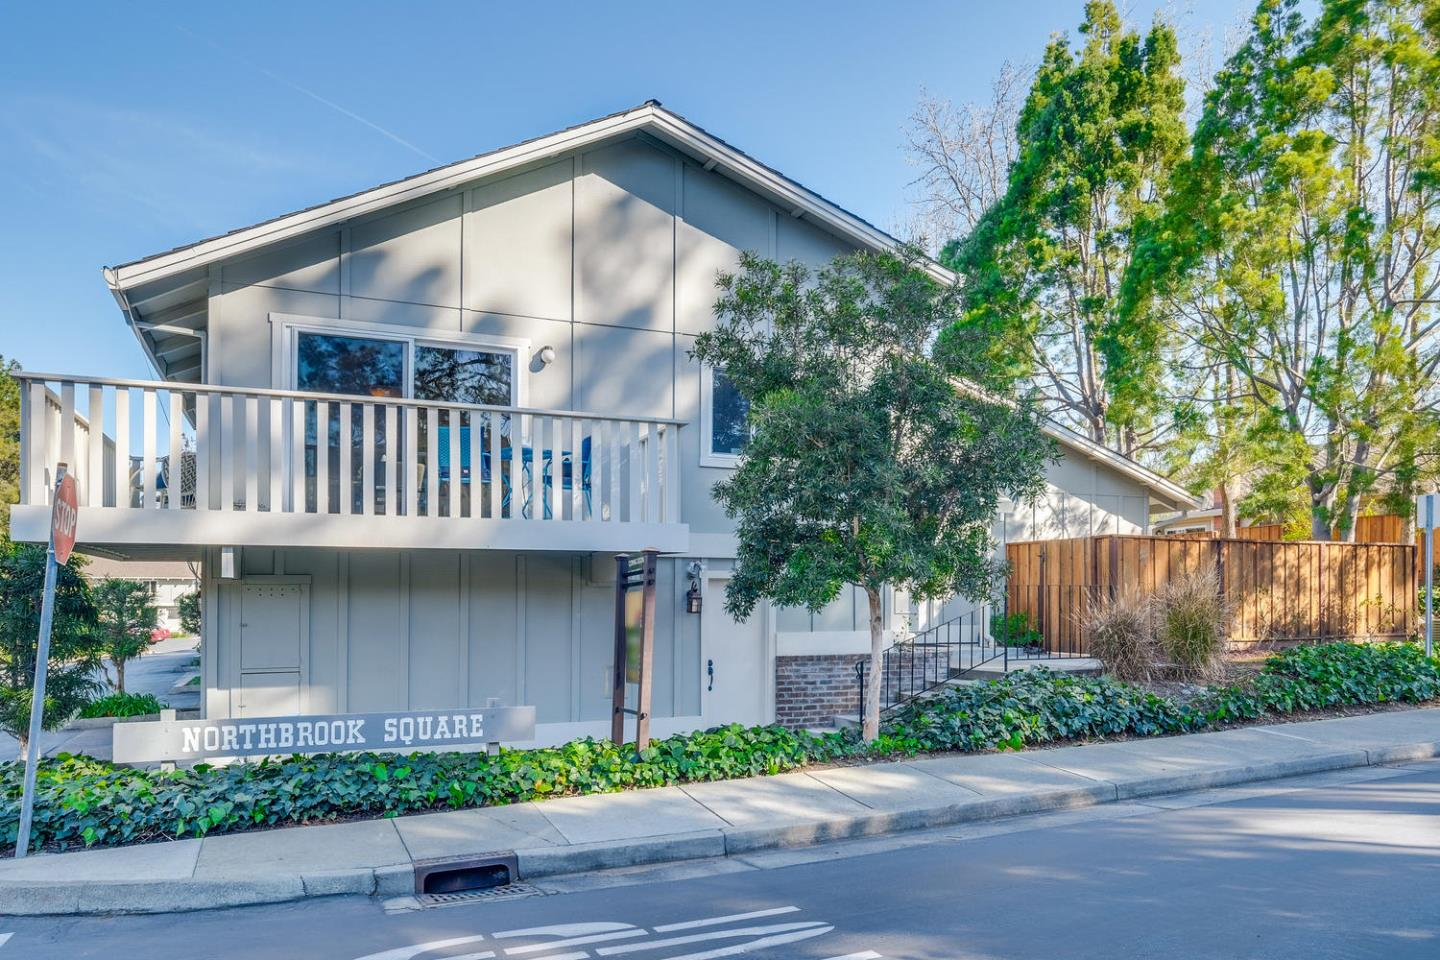 20336 NORTHBROOK SQ, CUPERTINO, CA 95014